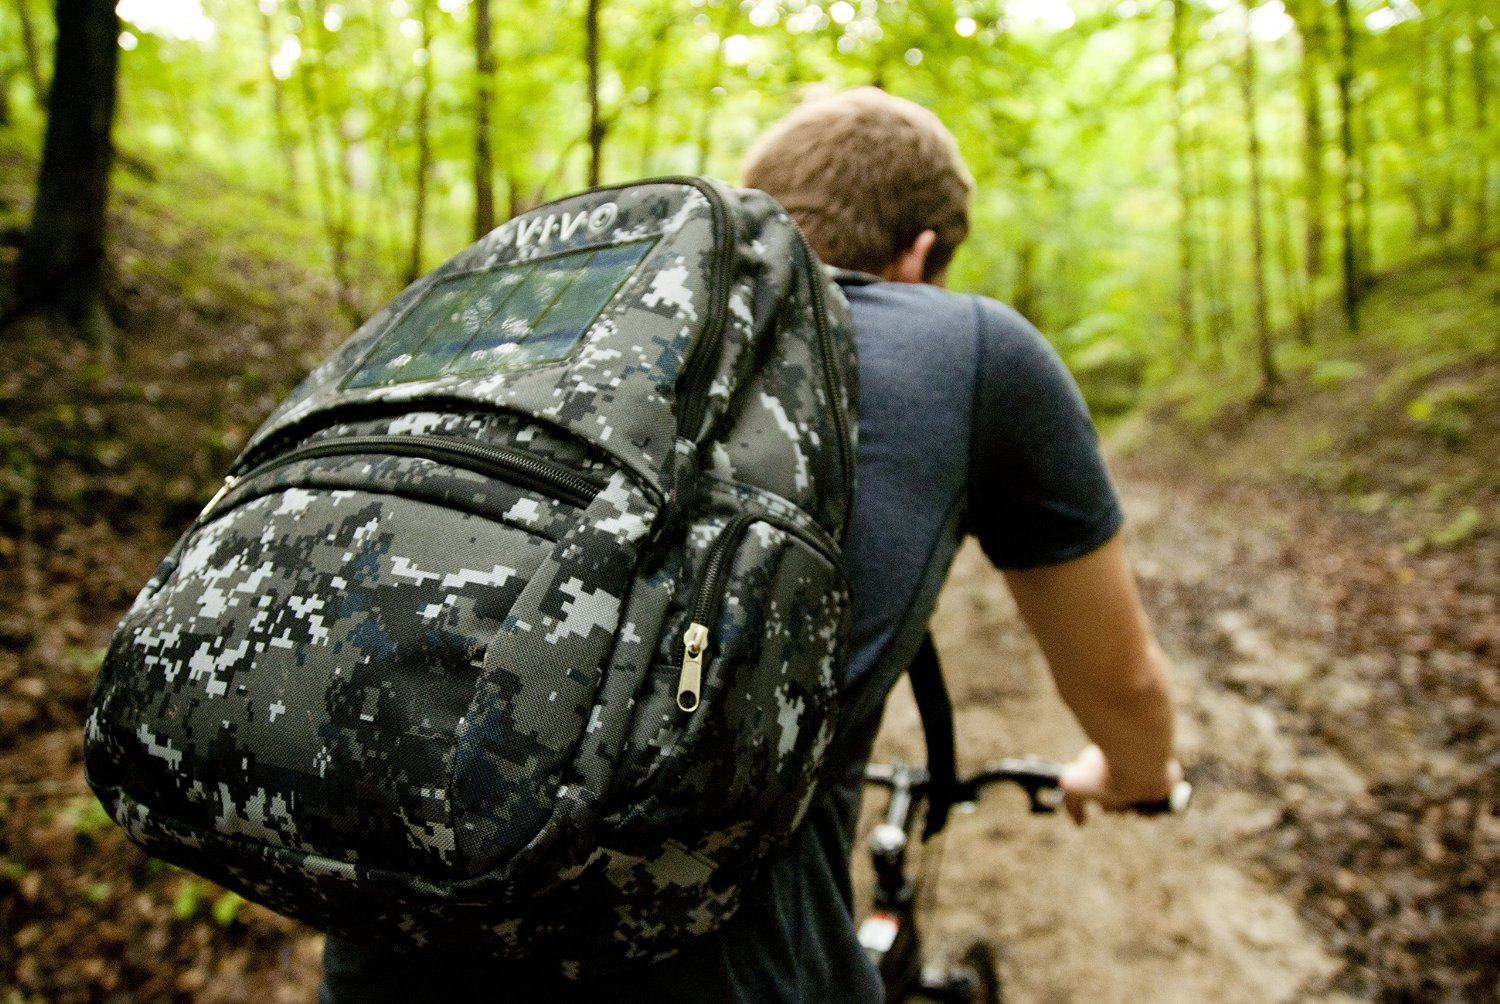 Waterproof Your Backpack - Crazy Backpacks